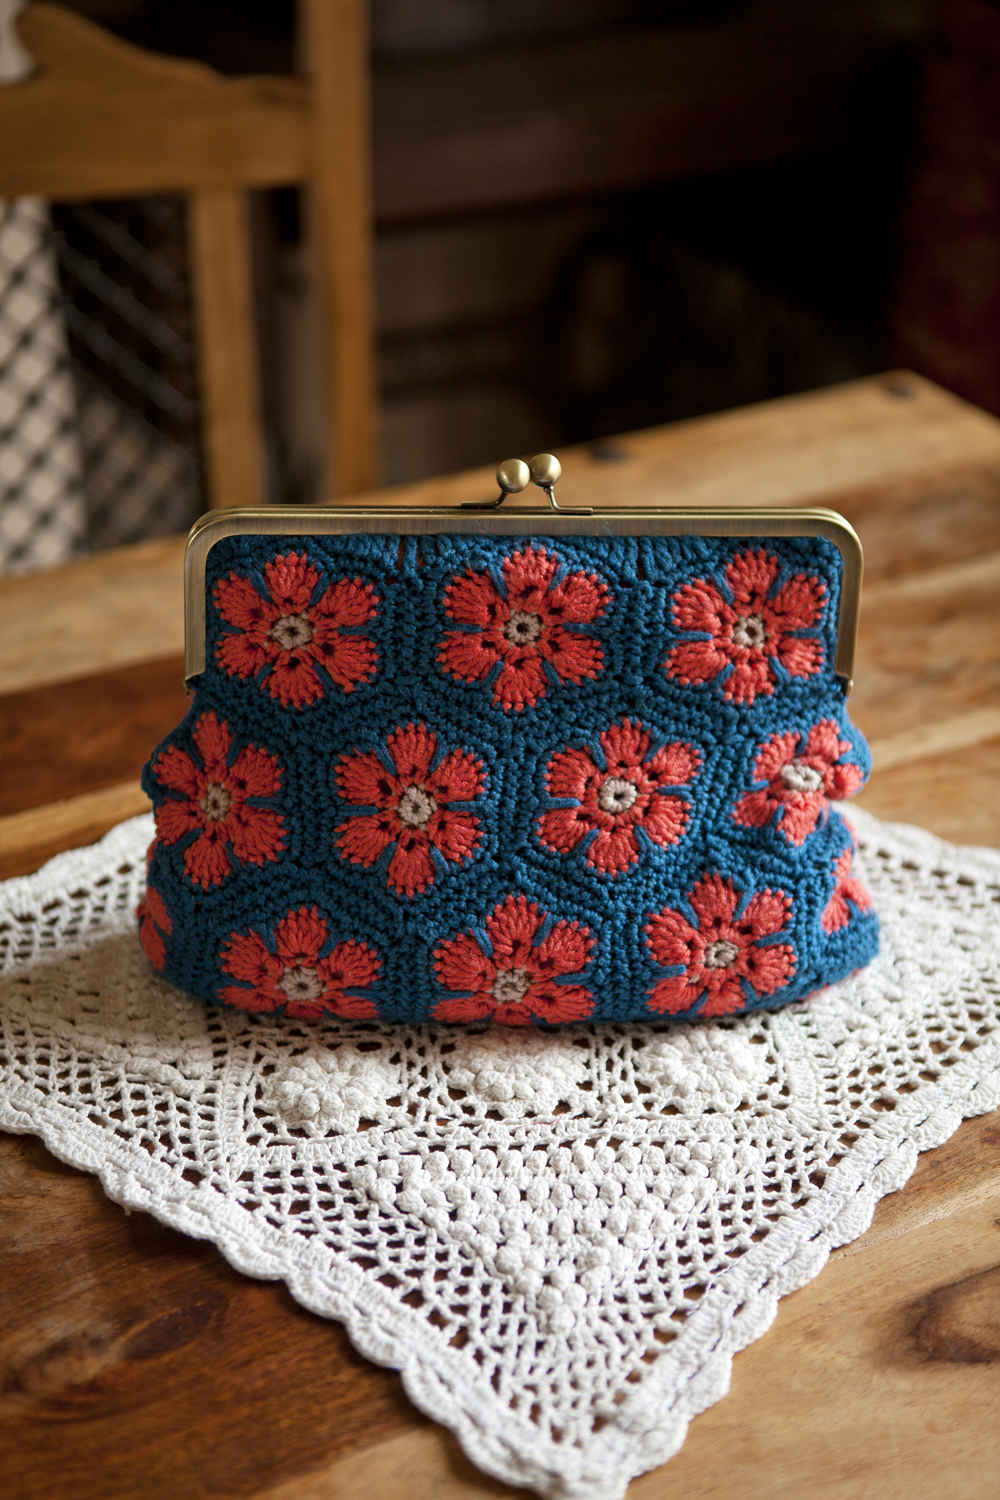 Crafty magazine issue 8 crafty magazine african flowers retro clutch purse kat bankloansurffo Gallery